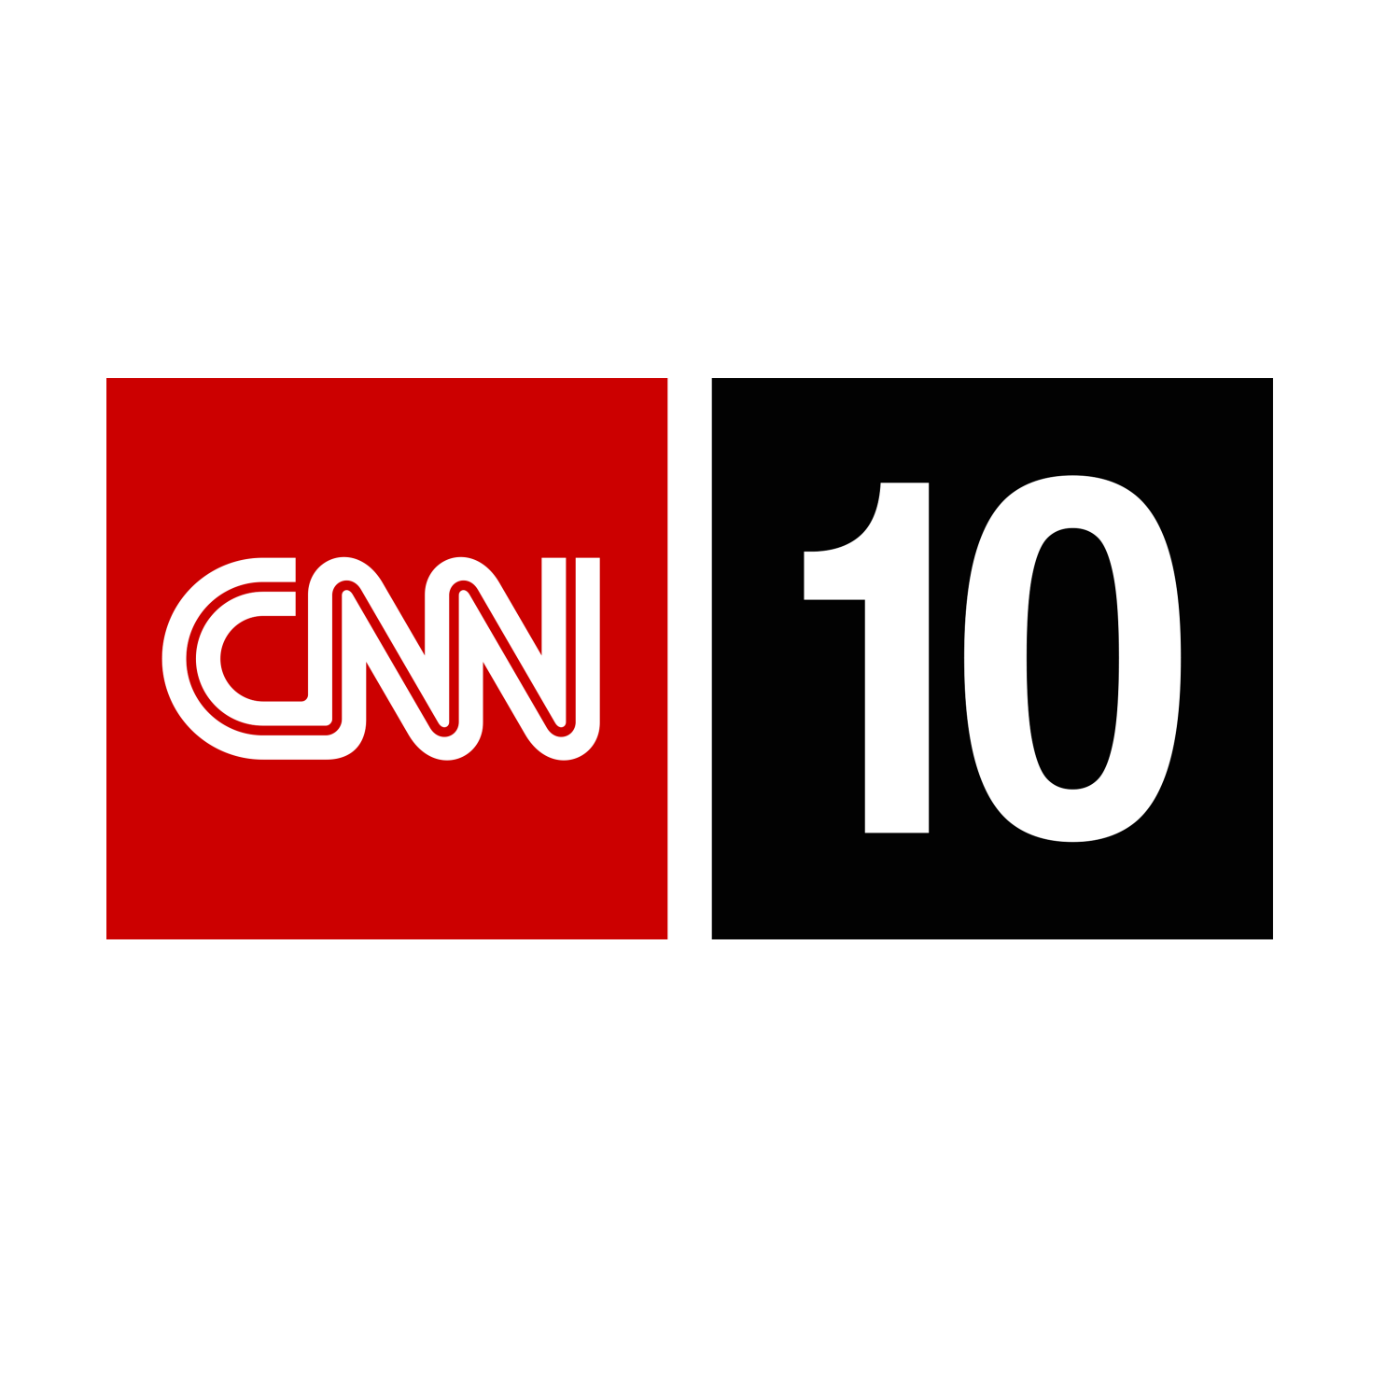 CNN Student News - April 29, 2013